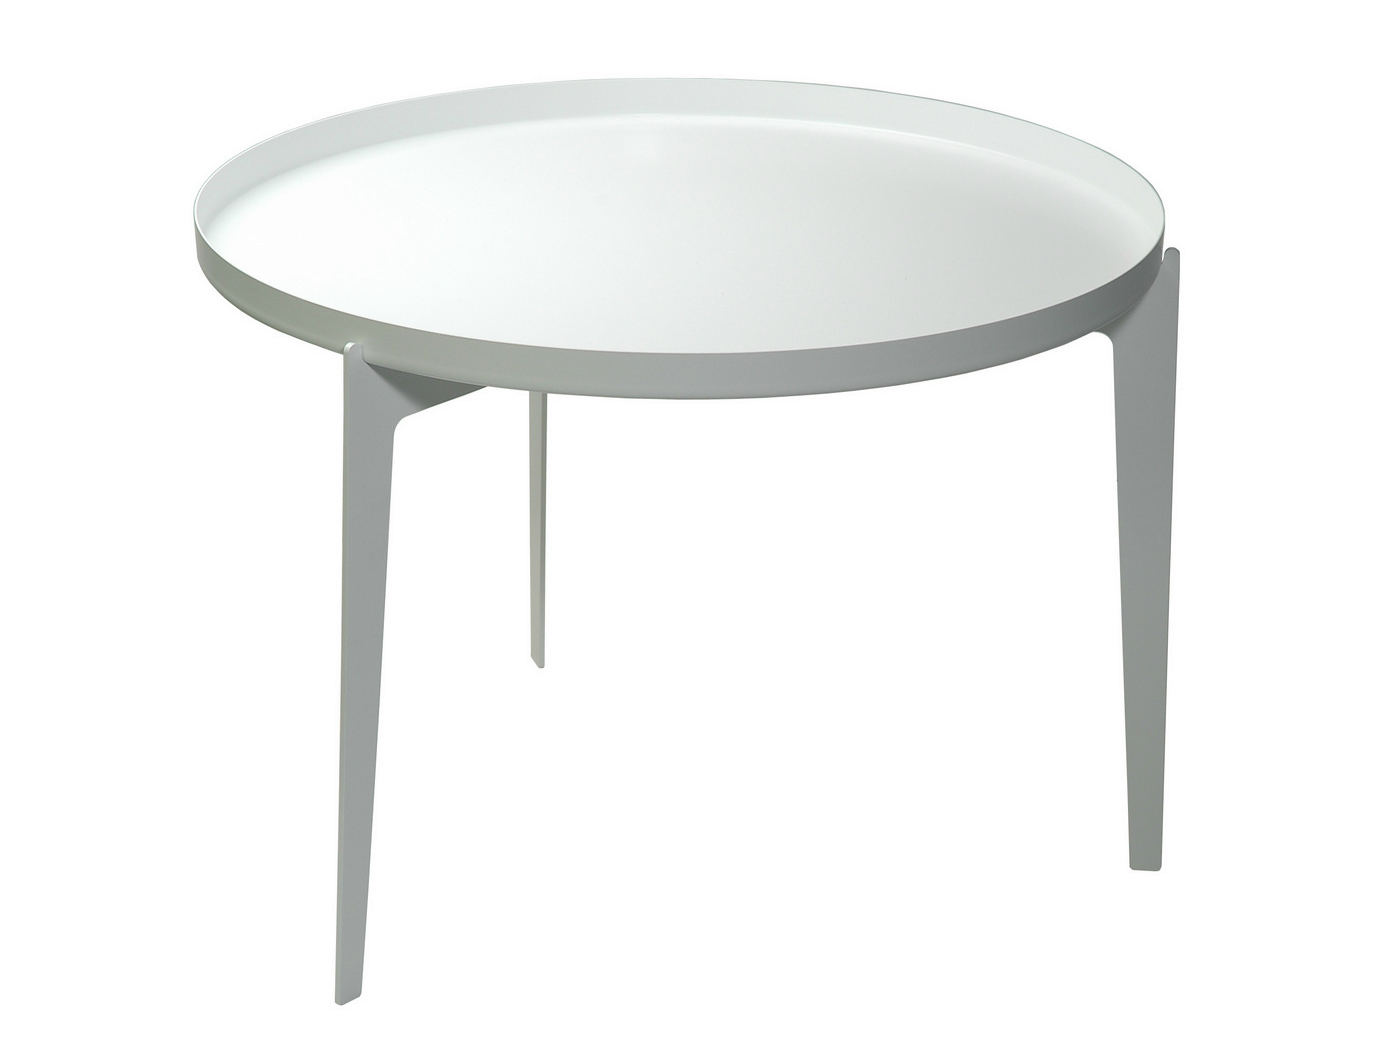 Charming Round Metal Tray Table Designs